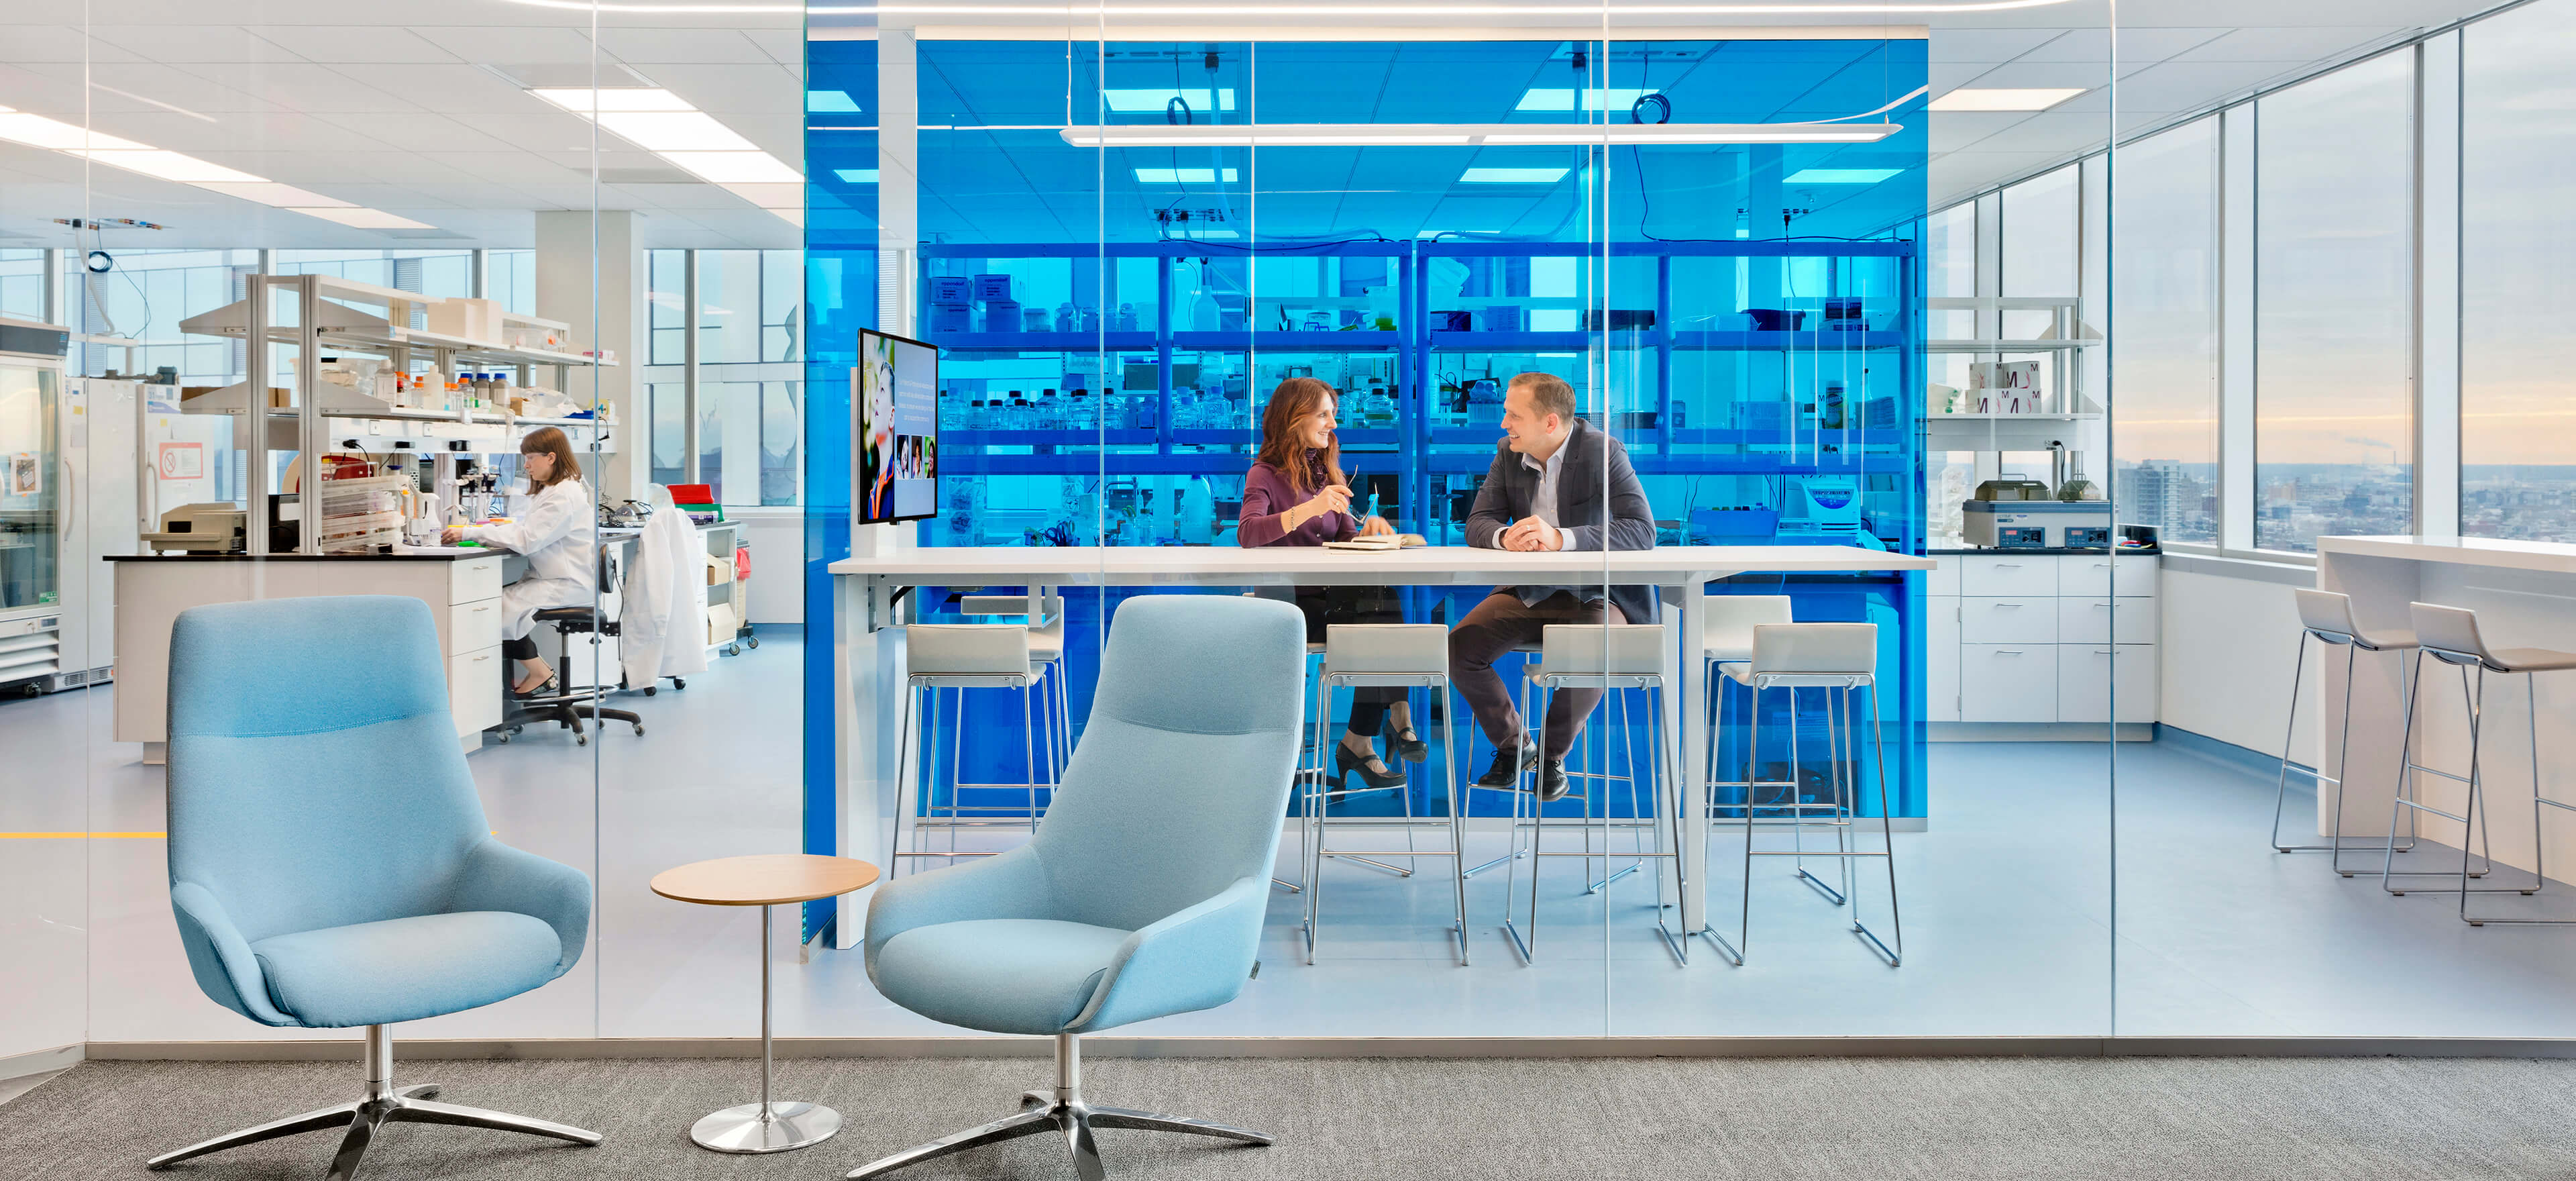 Gene therapy lab and collaborative space